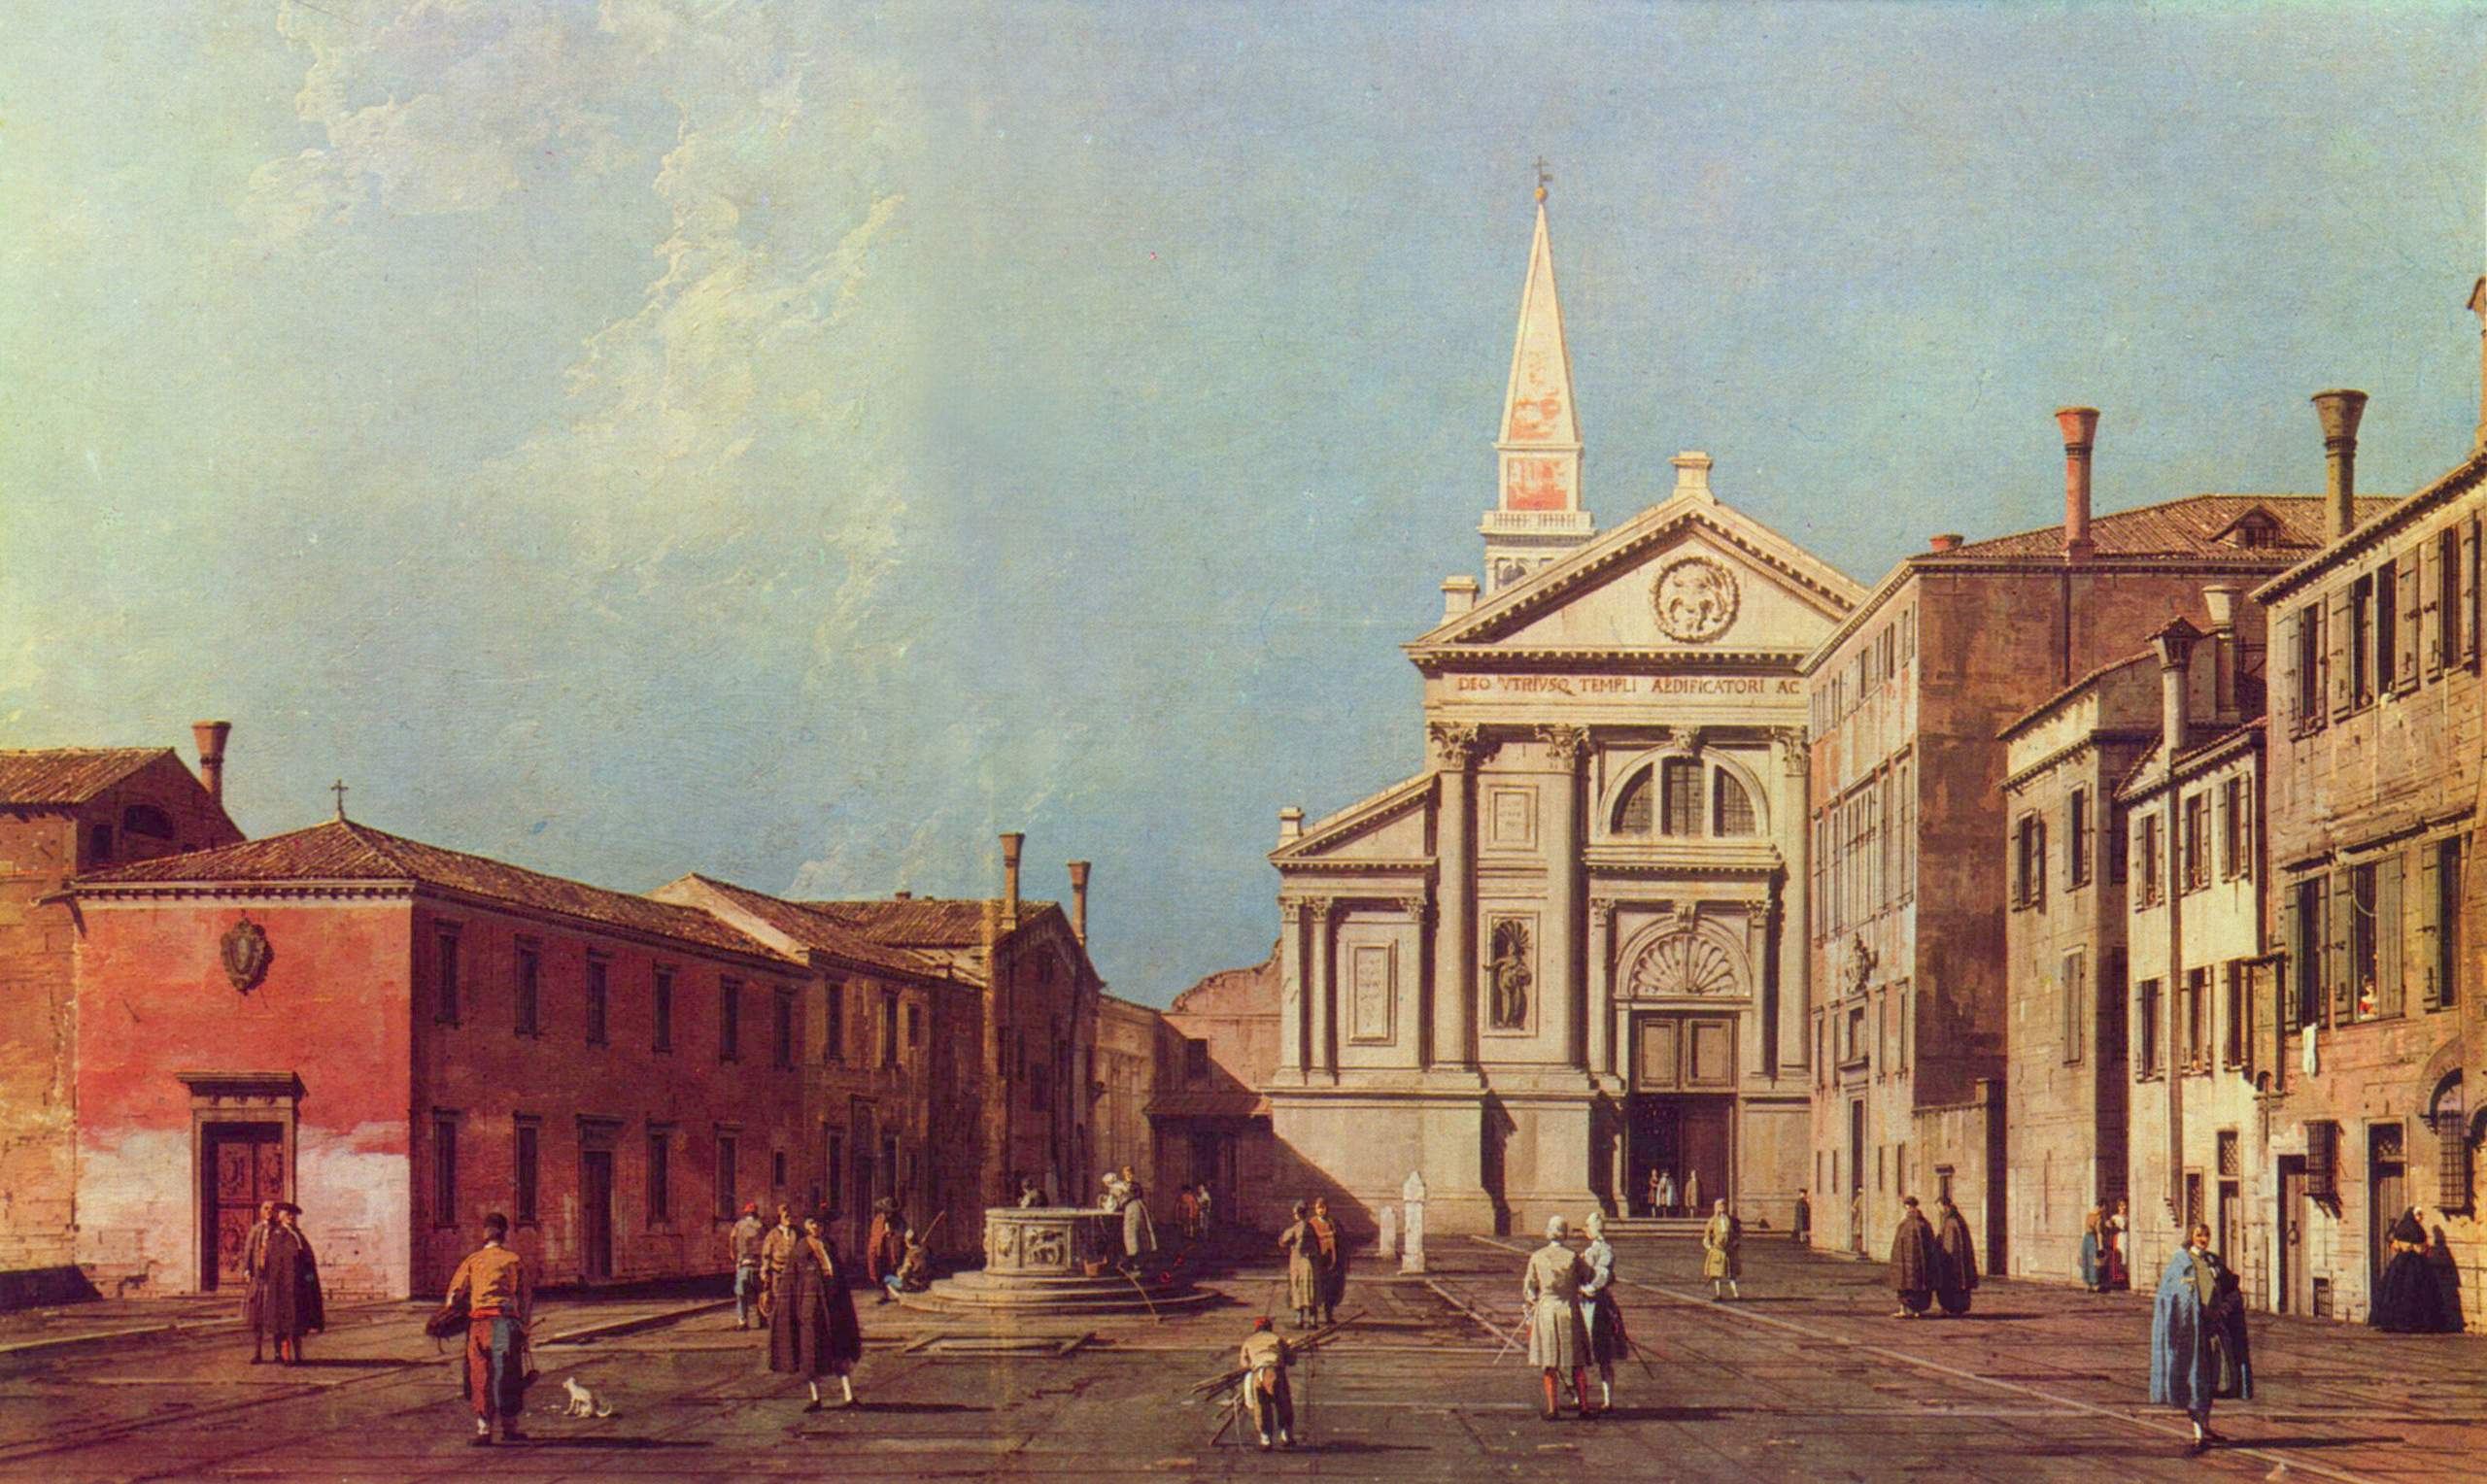 http://upload.wikimedia.org/wikipedia/commons/d/d8/Canaletto_%28II%29_009.jpg